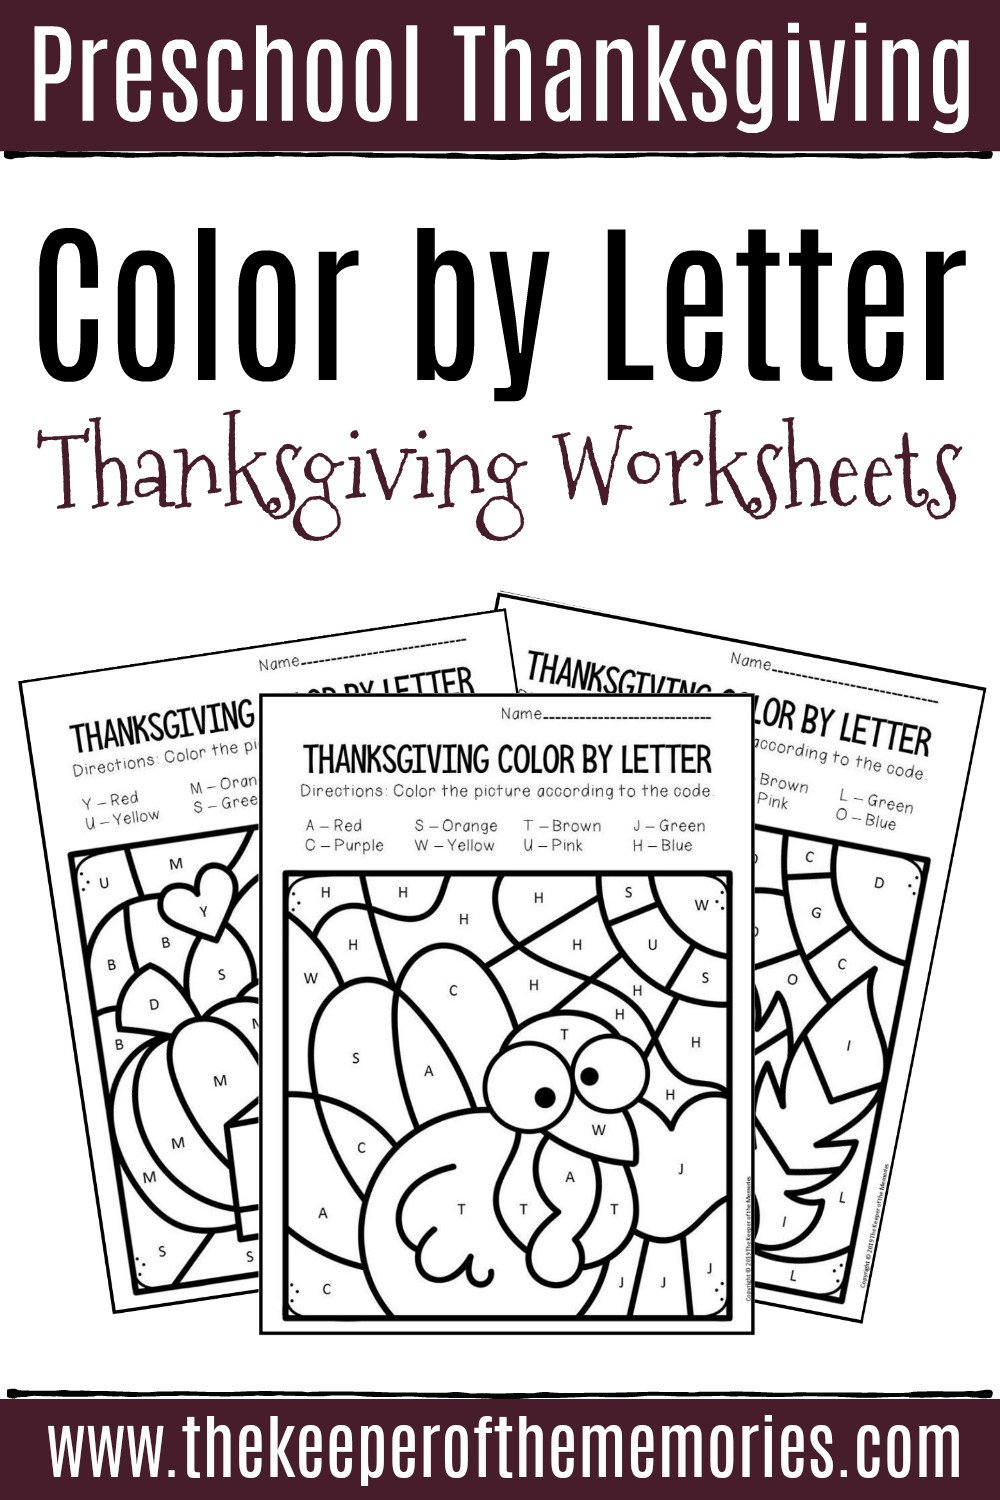 Color by Letter Thanksgiving Preschool Worksheets 1